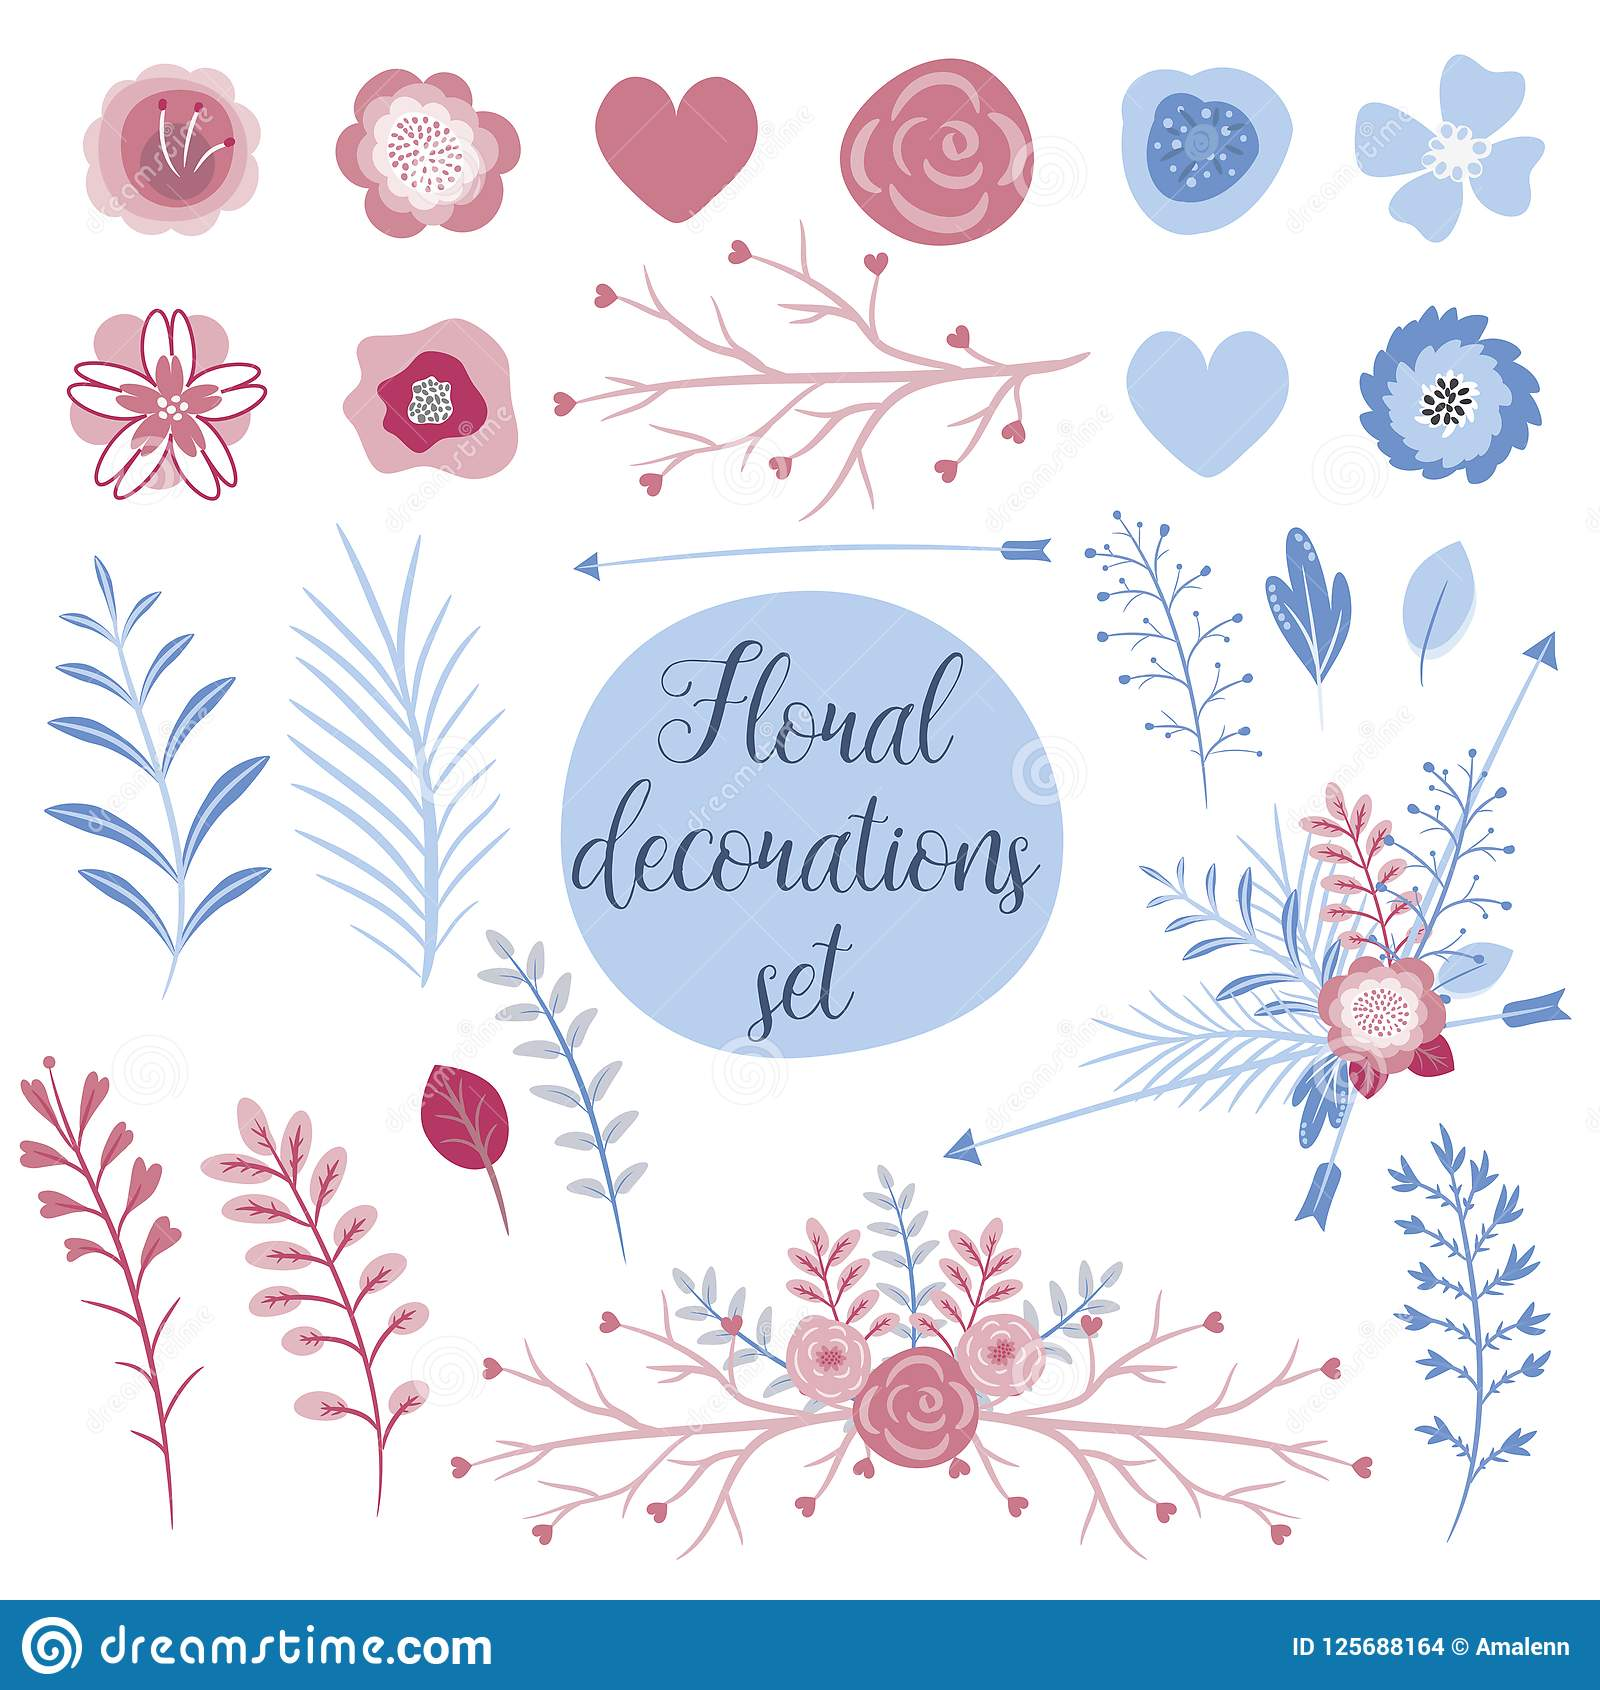 love collection set for cards. perfect for valentines day, stickers